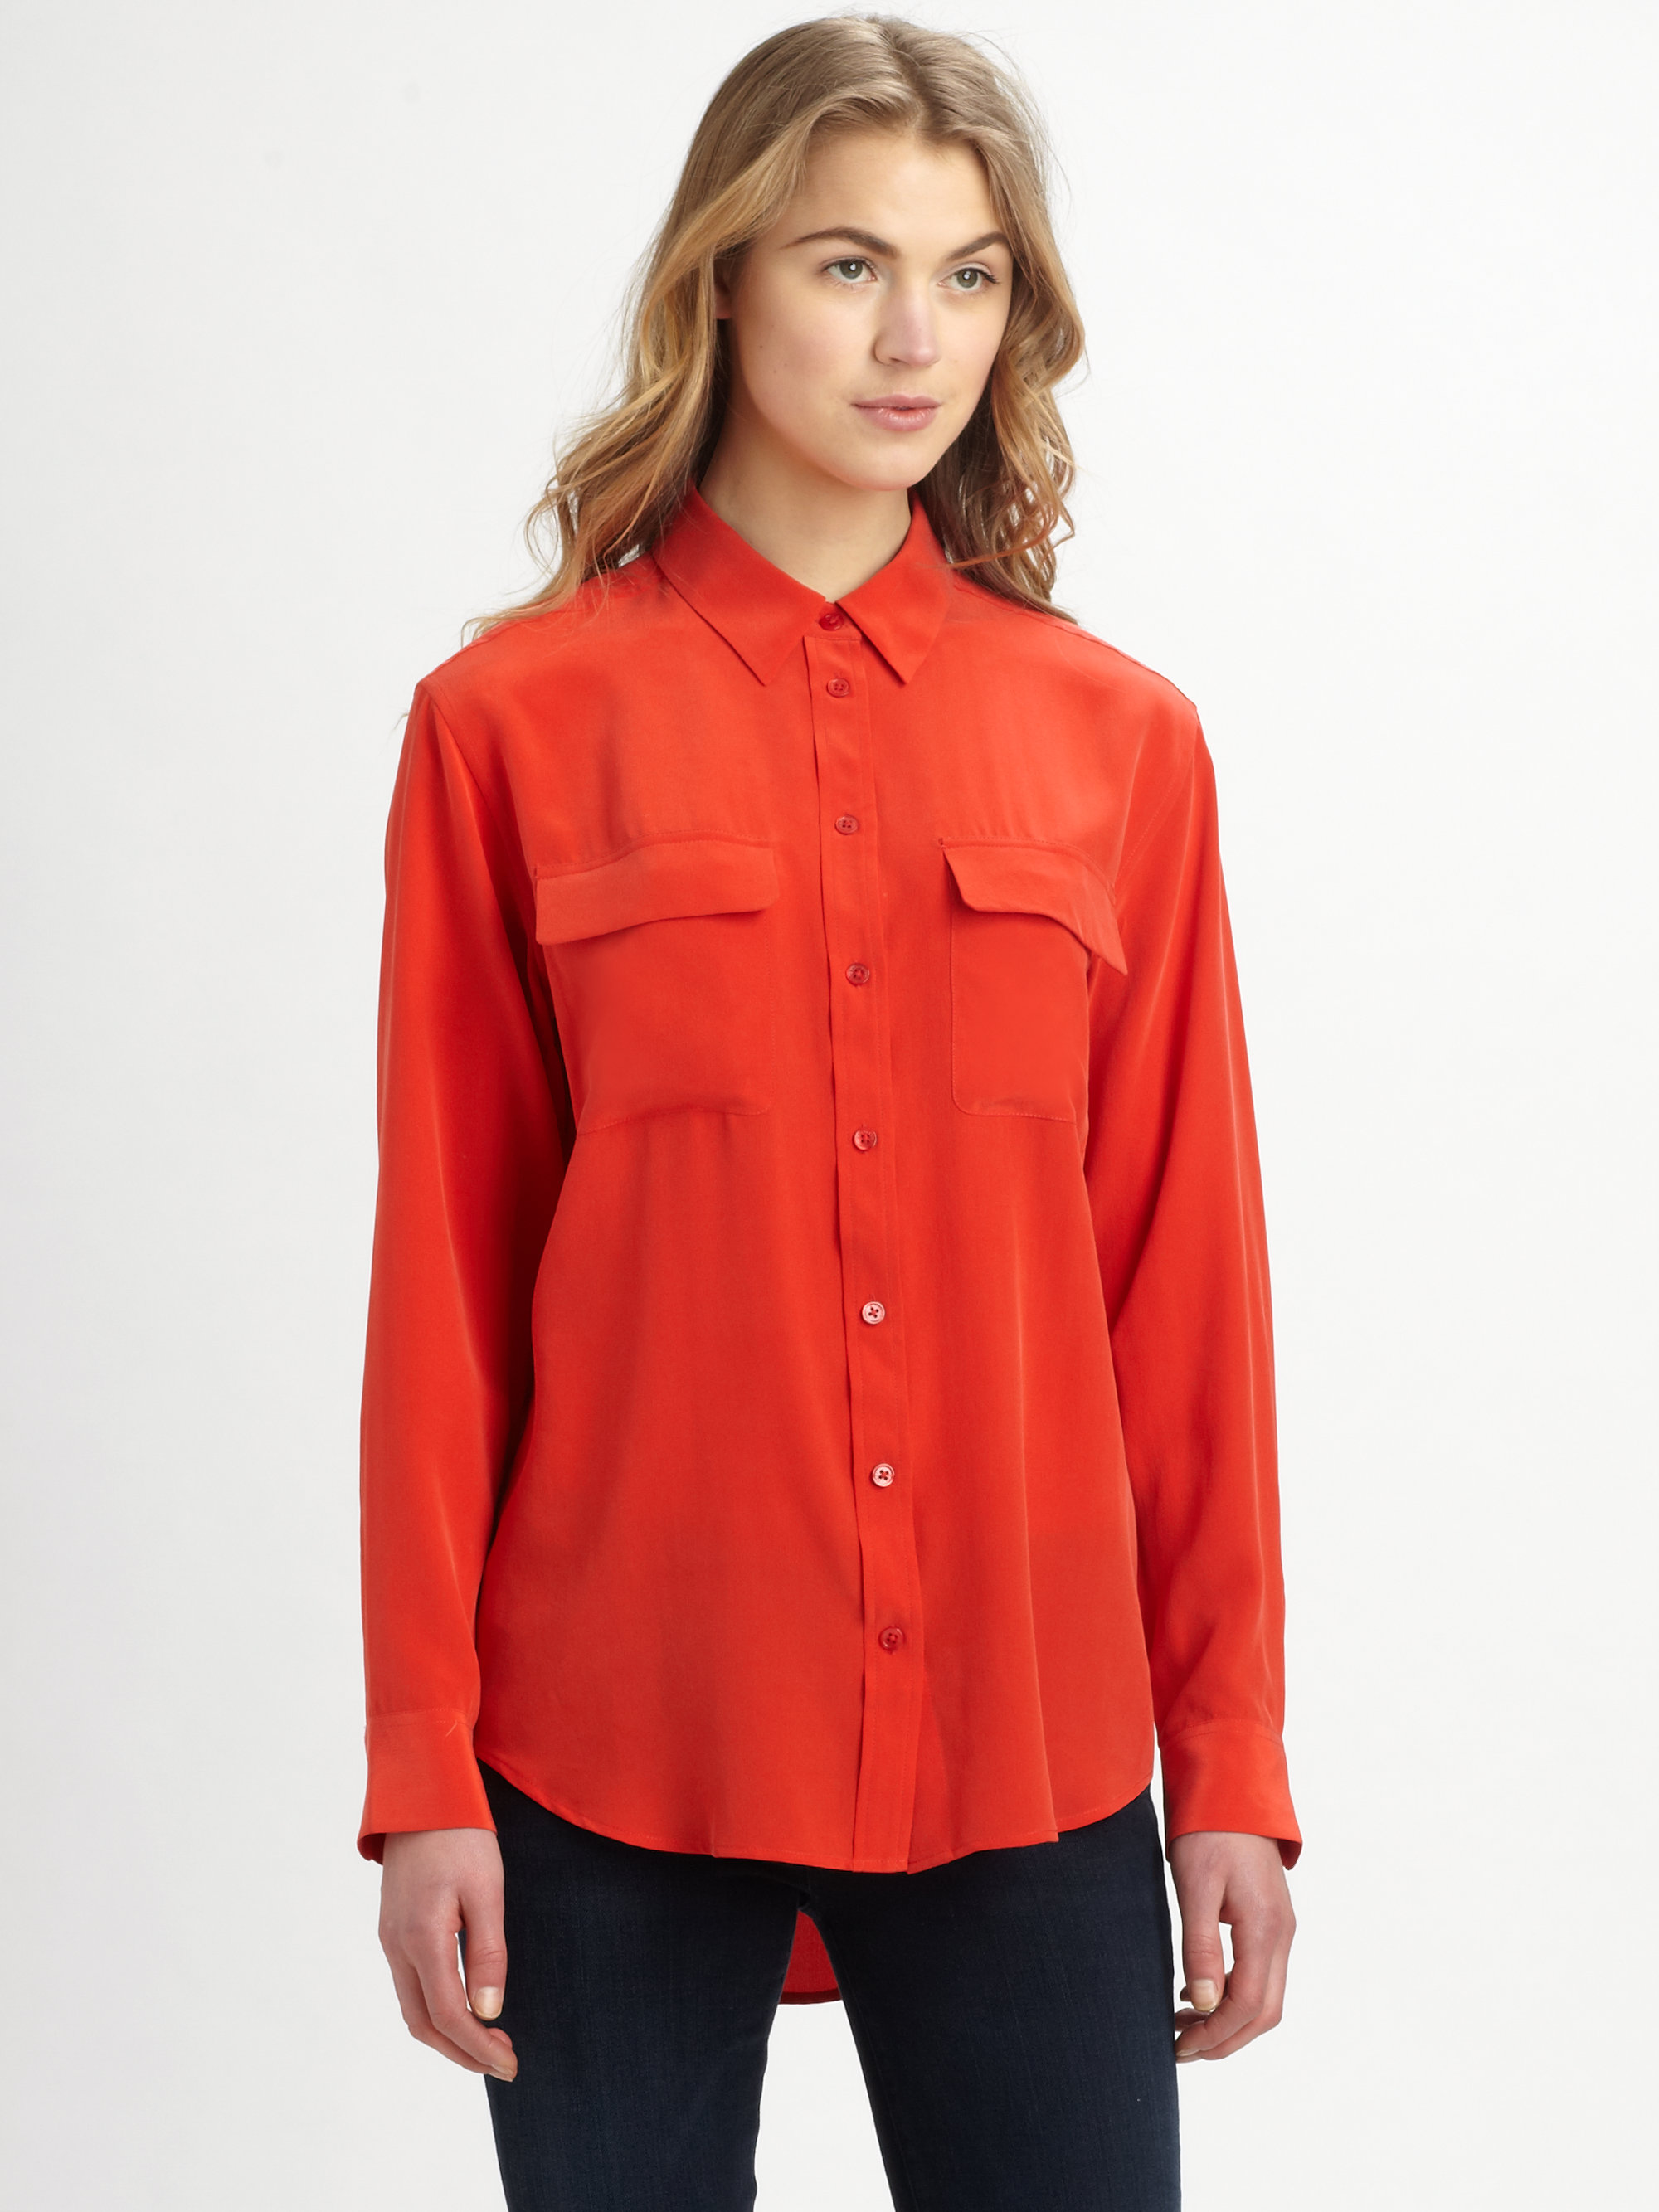 Equipment Signature Silk Shirt In Red Lyst